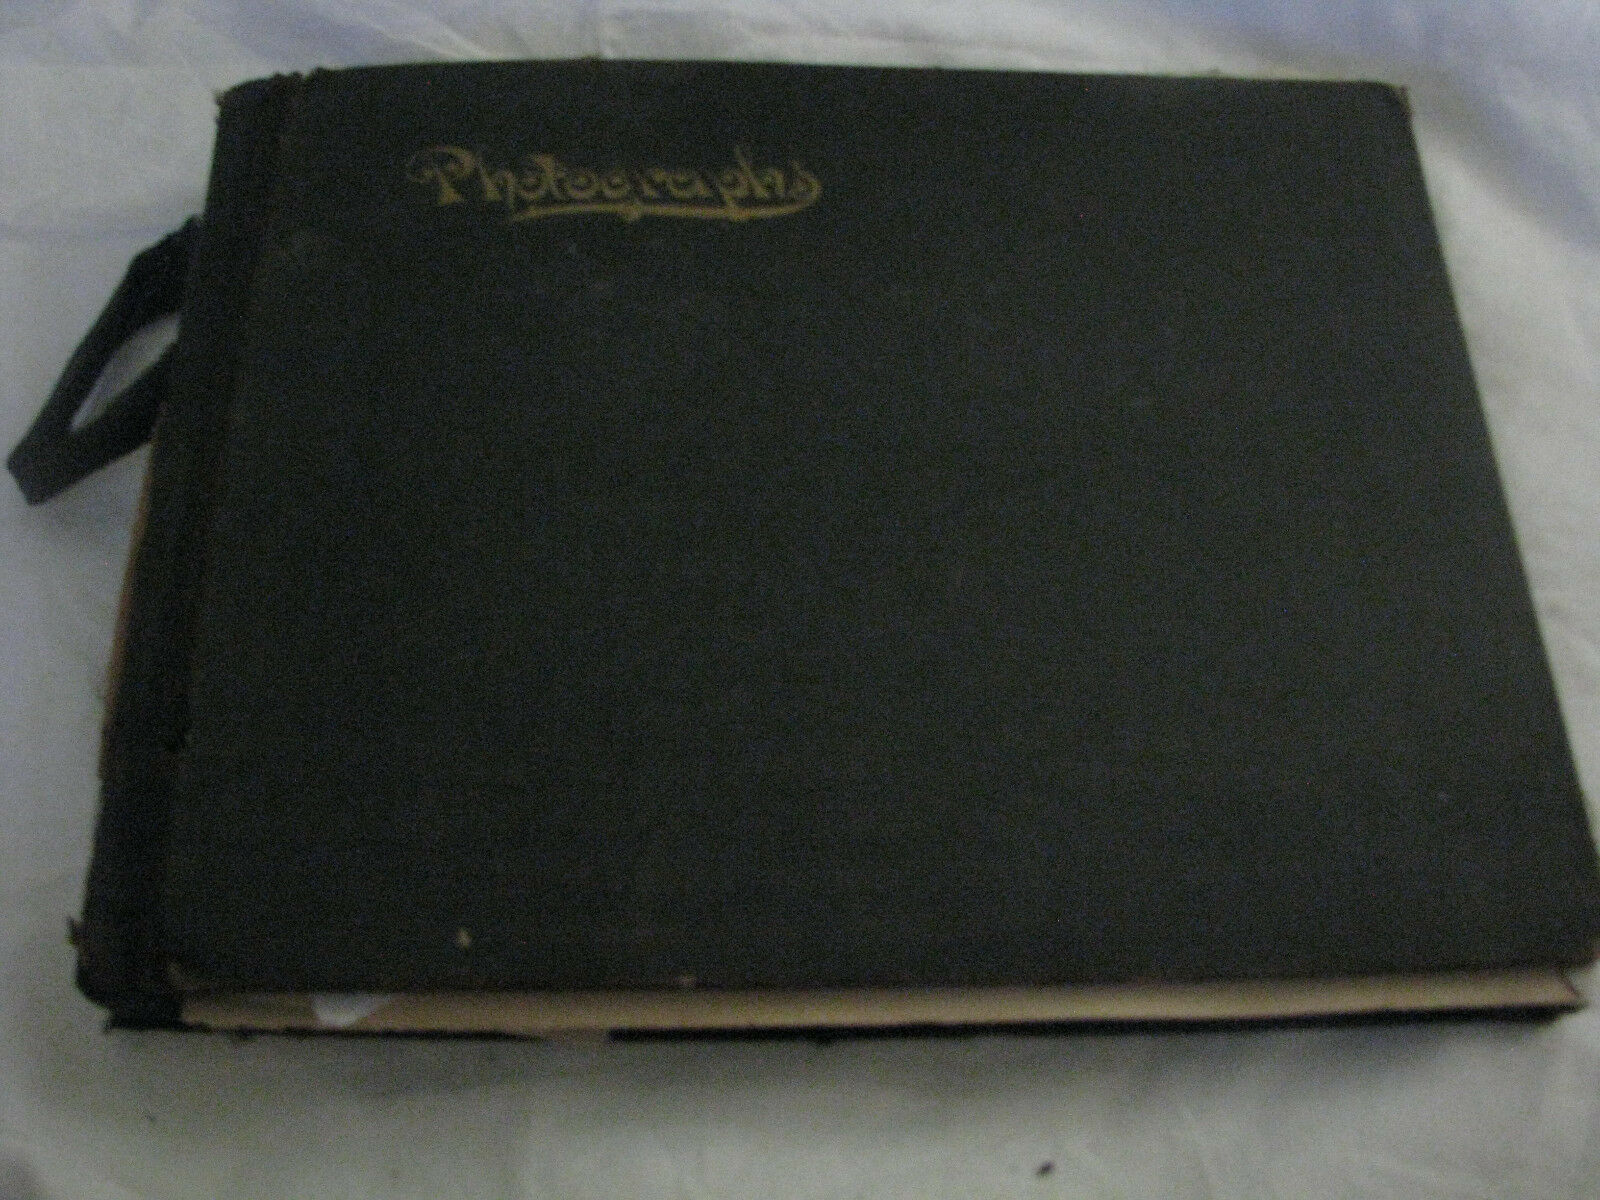 OLD PHOTO ALBUM BELIEVE TO BE OWNED BY L.P. MCCUISTION FOUNDER OF SANITARIUM PAR